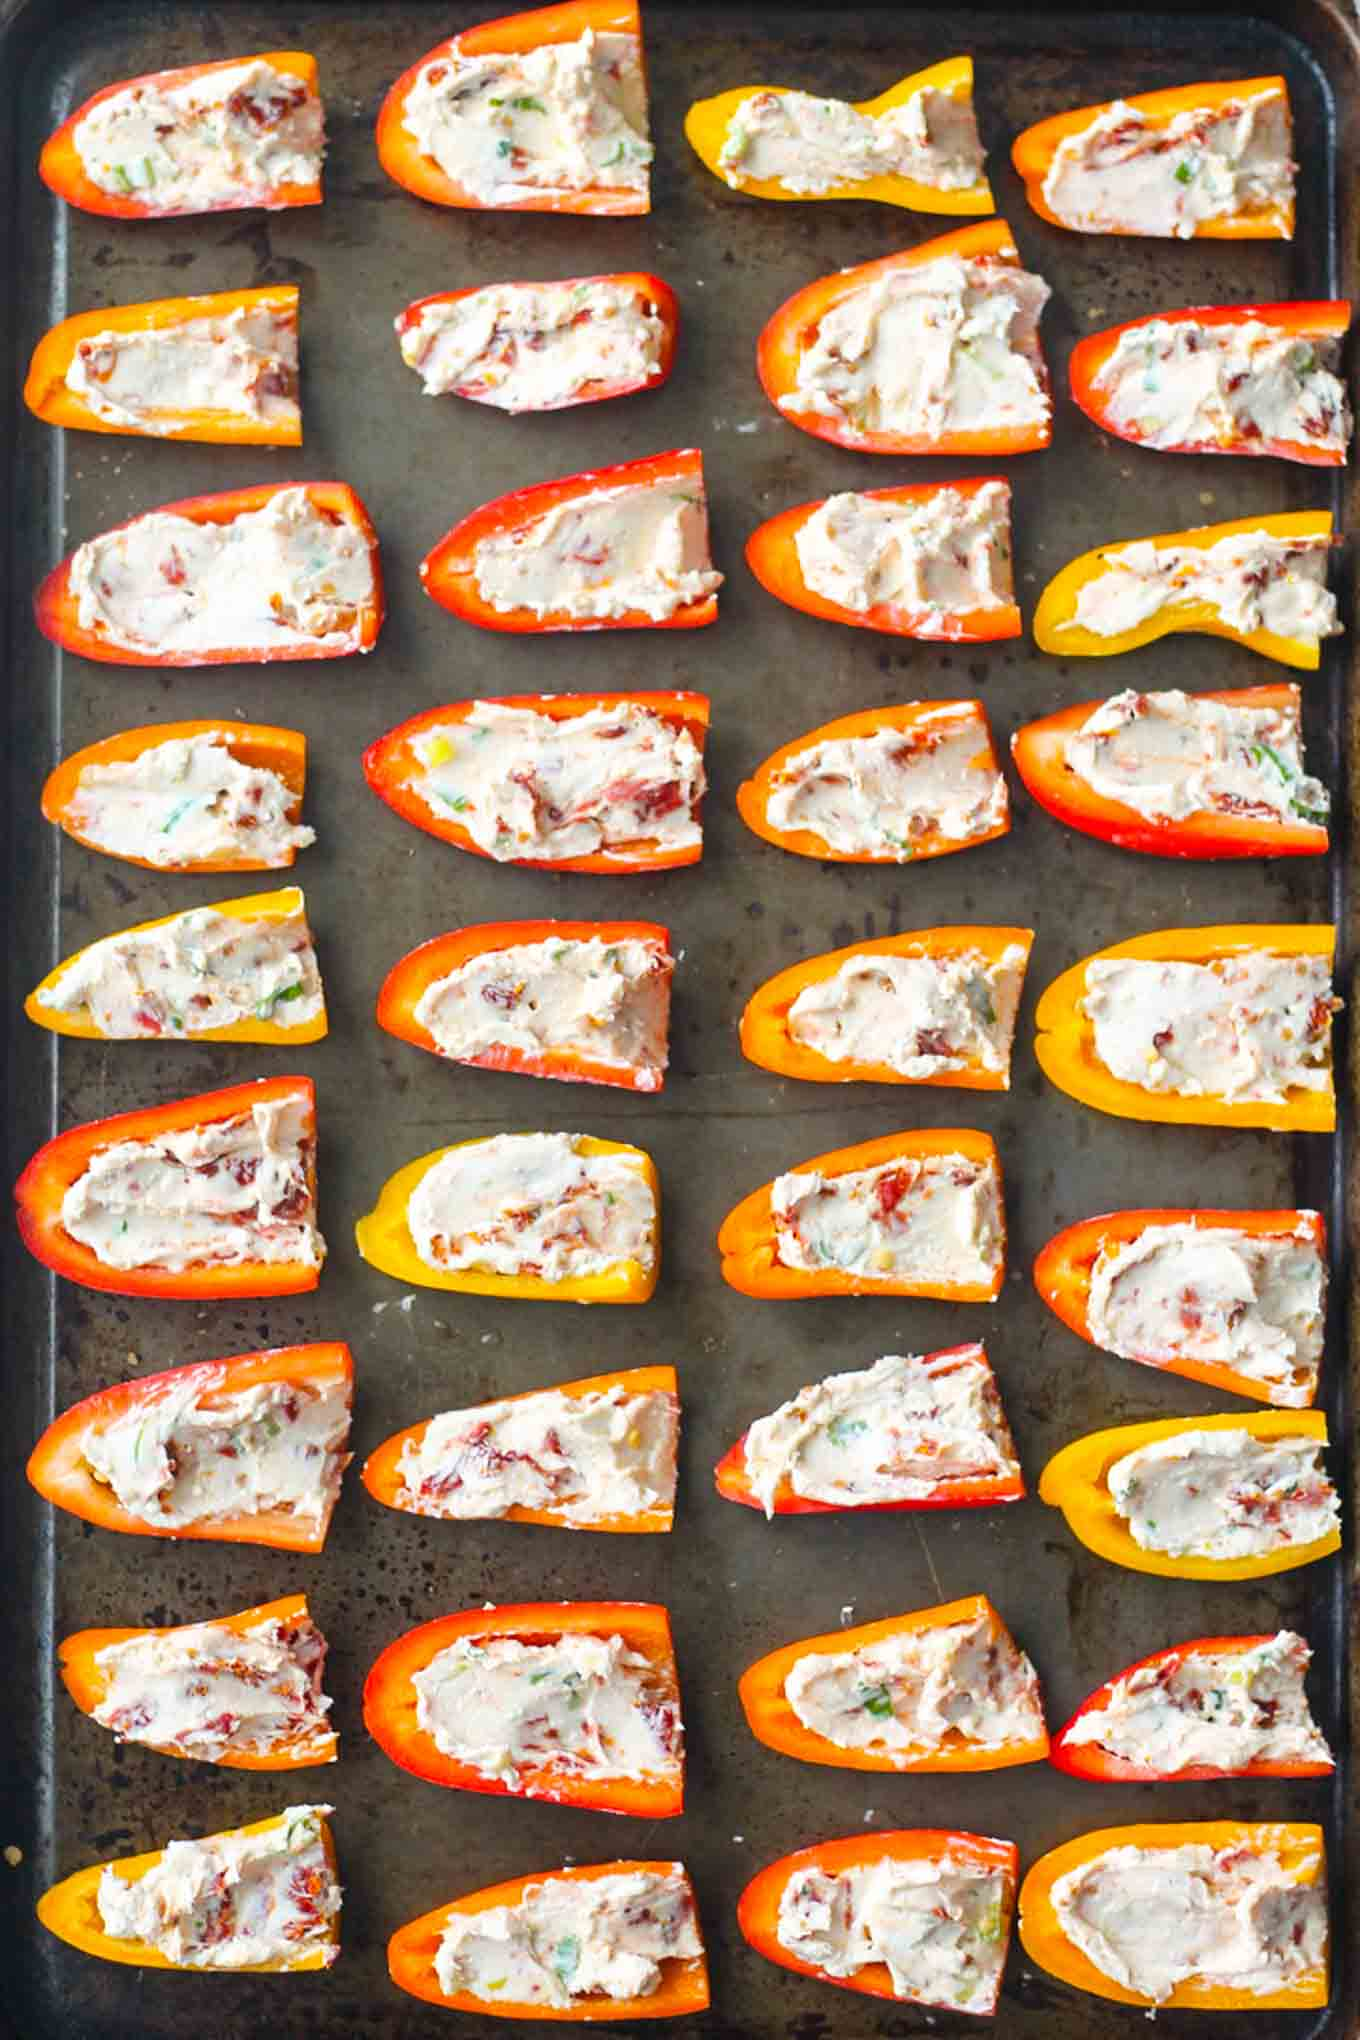 Pre-baked stuffed peppers on a sheet pan.